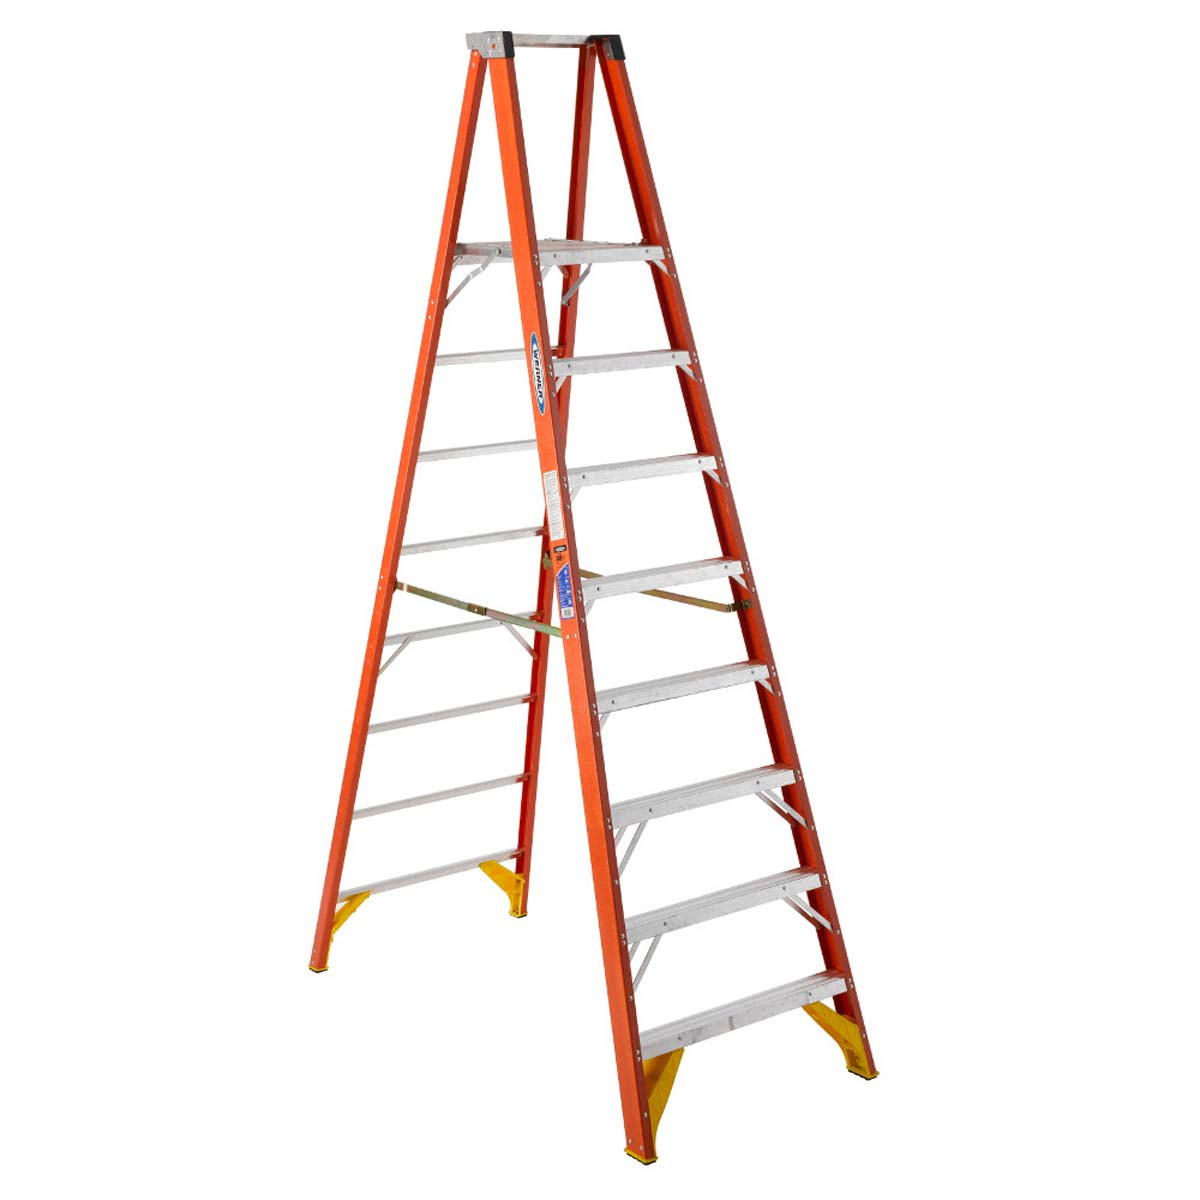 P6208 Fiberglass 8 ft Platform Ladder - 8'